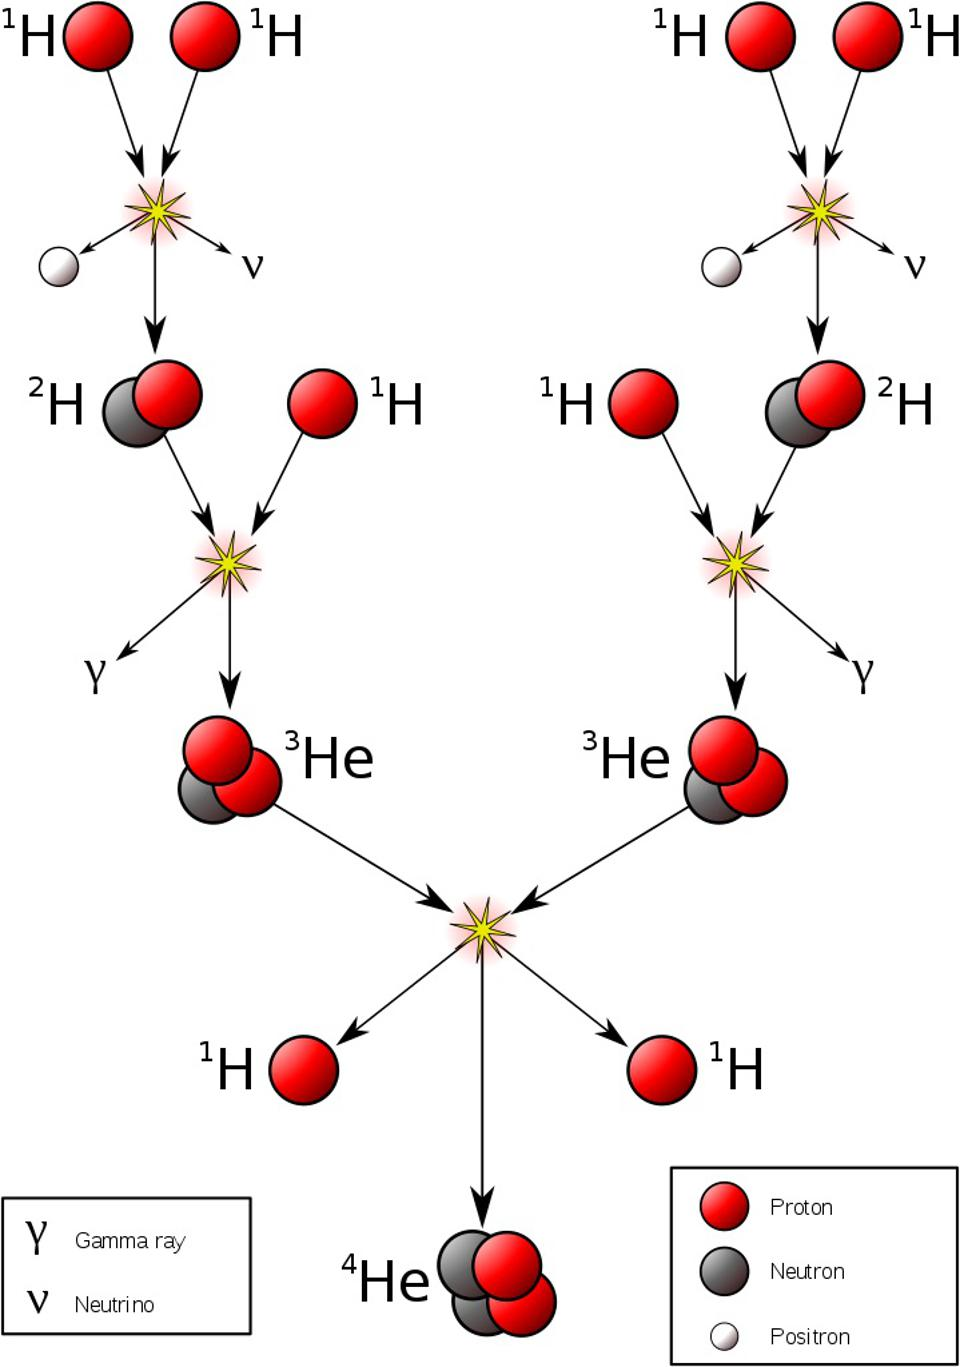 The most straightforward and lowest-energy version of the proton-proton chain.